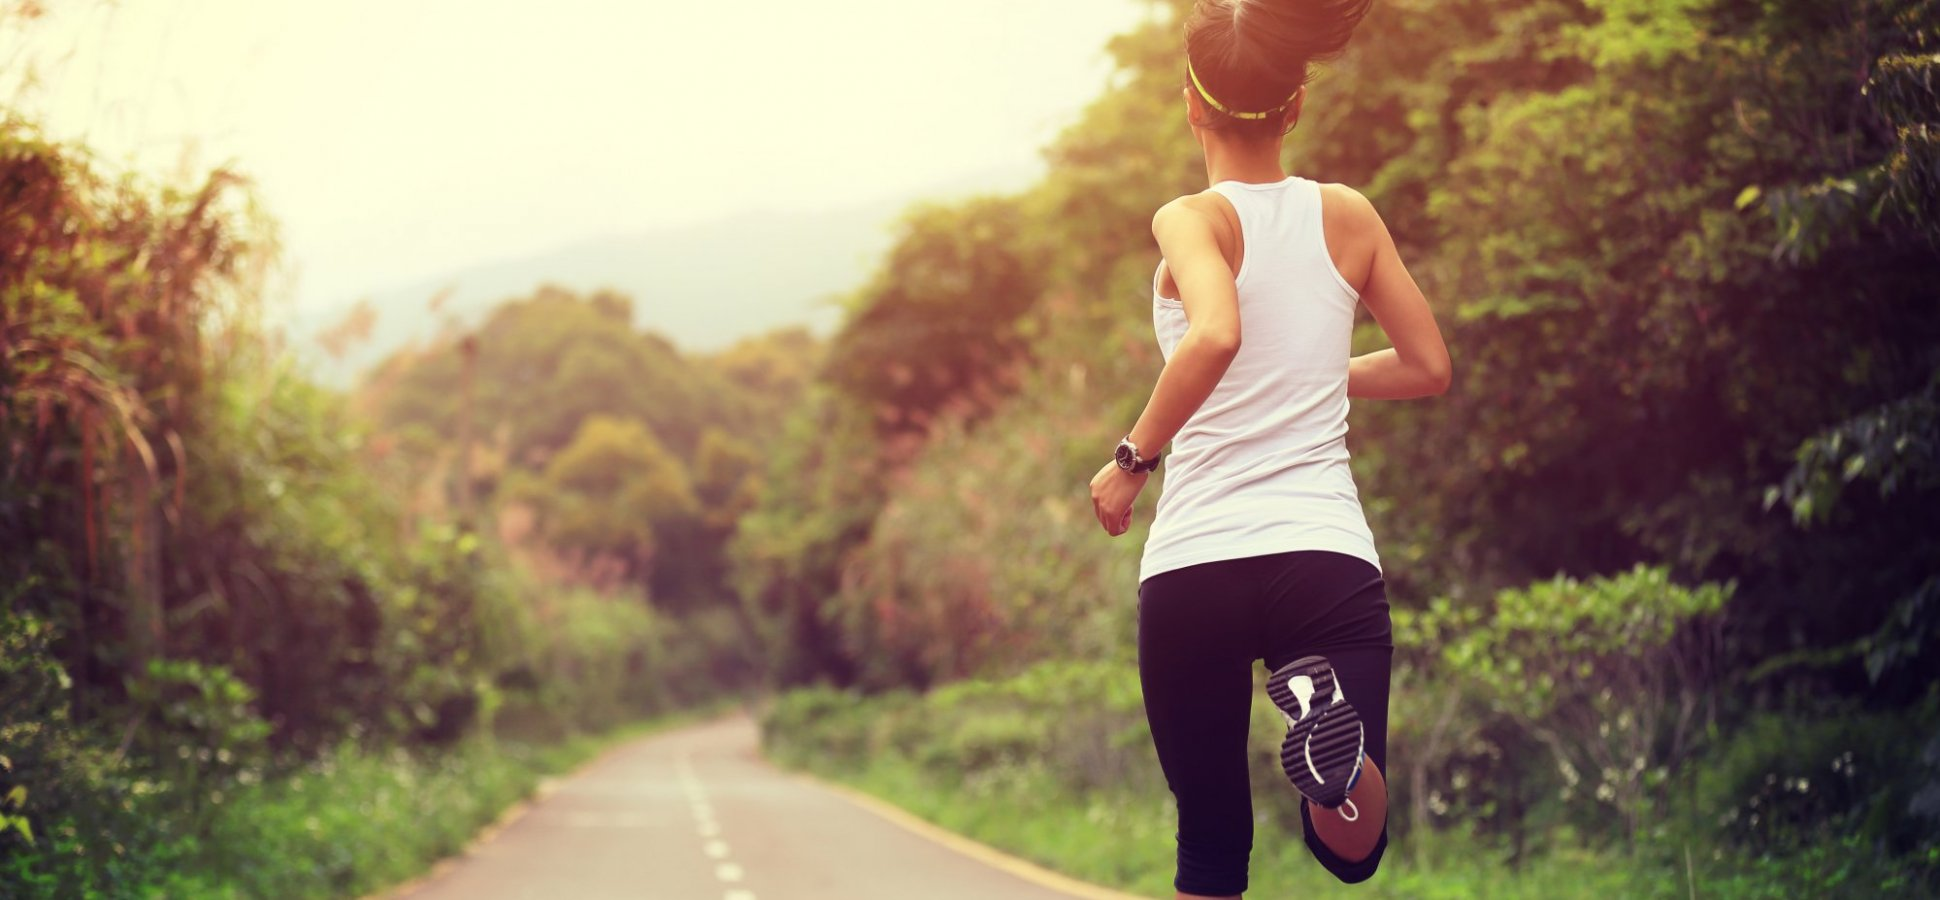 Running your Business is Like Running A Marathon: Adopt These Practices and You'll Find You're Firing on All Cylinders